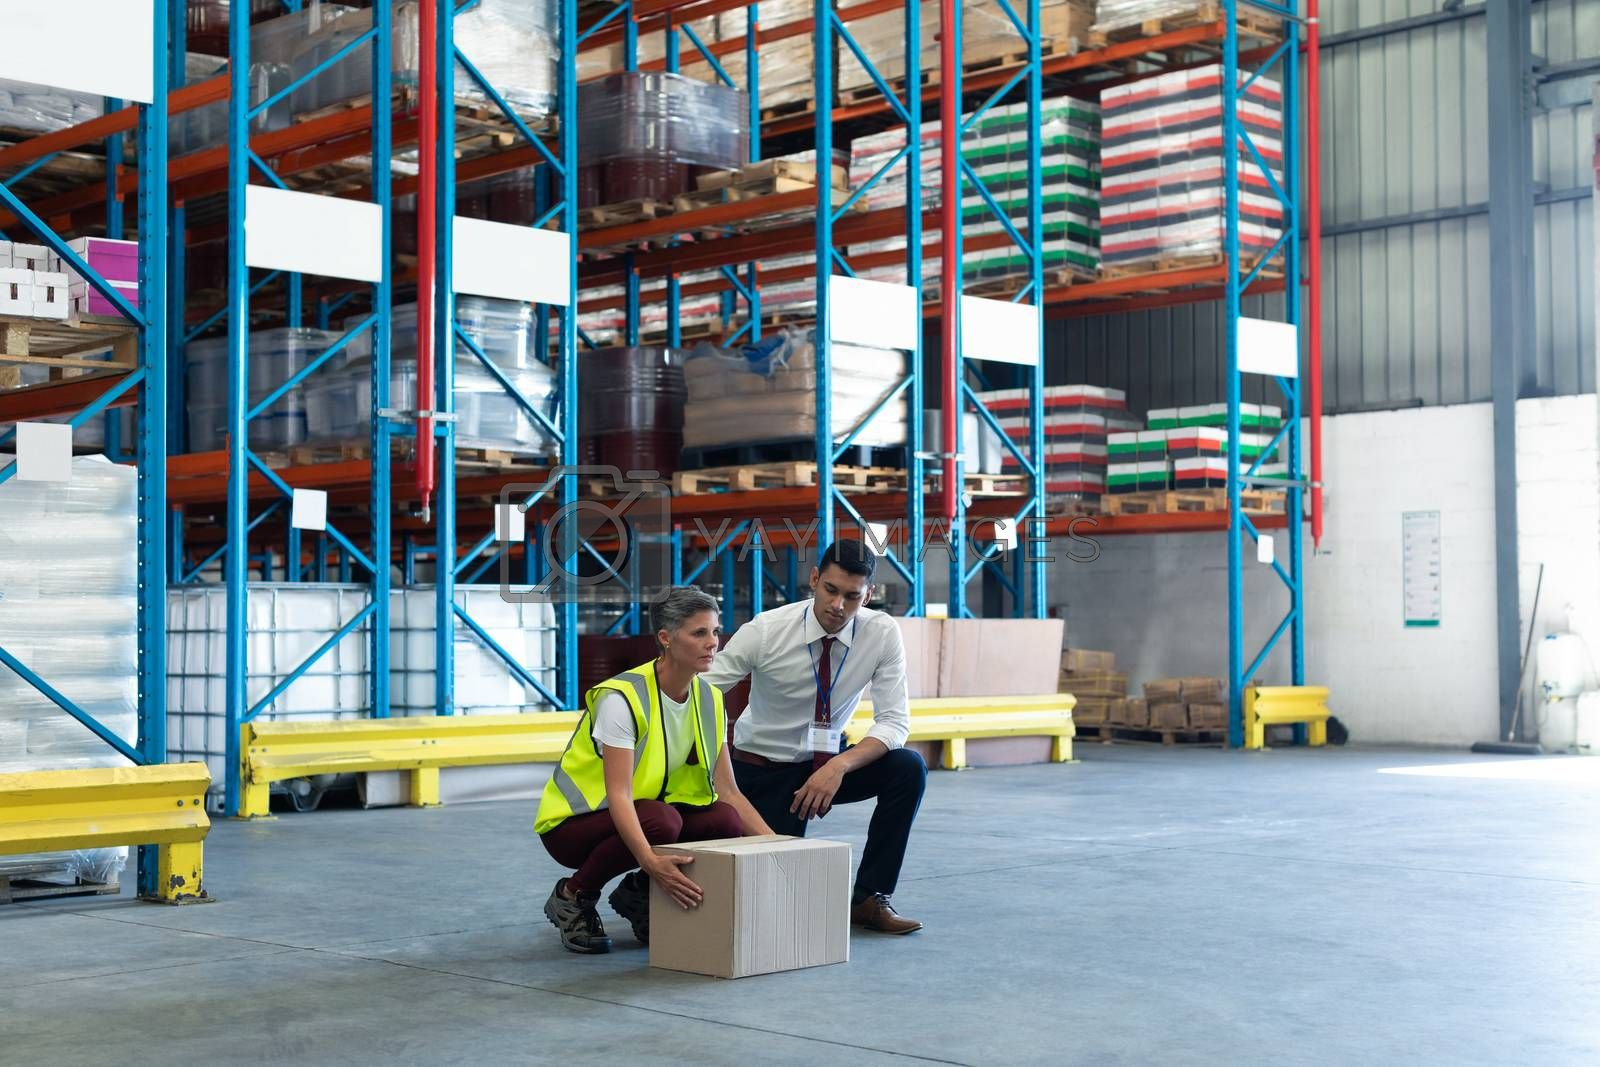 Large angle view of mixed-race Young male staff giving training to Caucasian female staff in warehouse. This is a freight transportation and distribution warehouse. Industrial and industrial workers concept